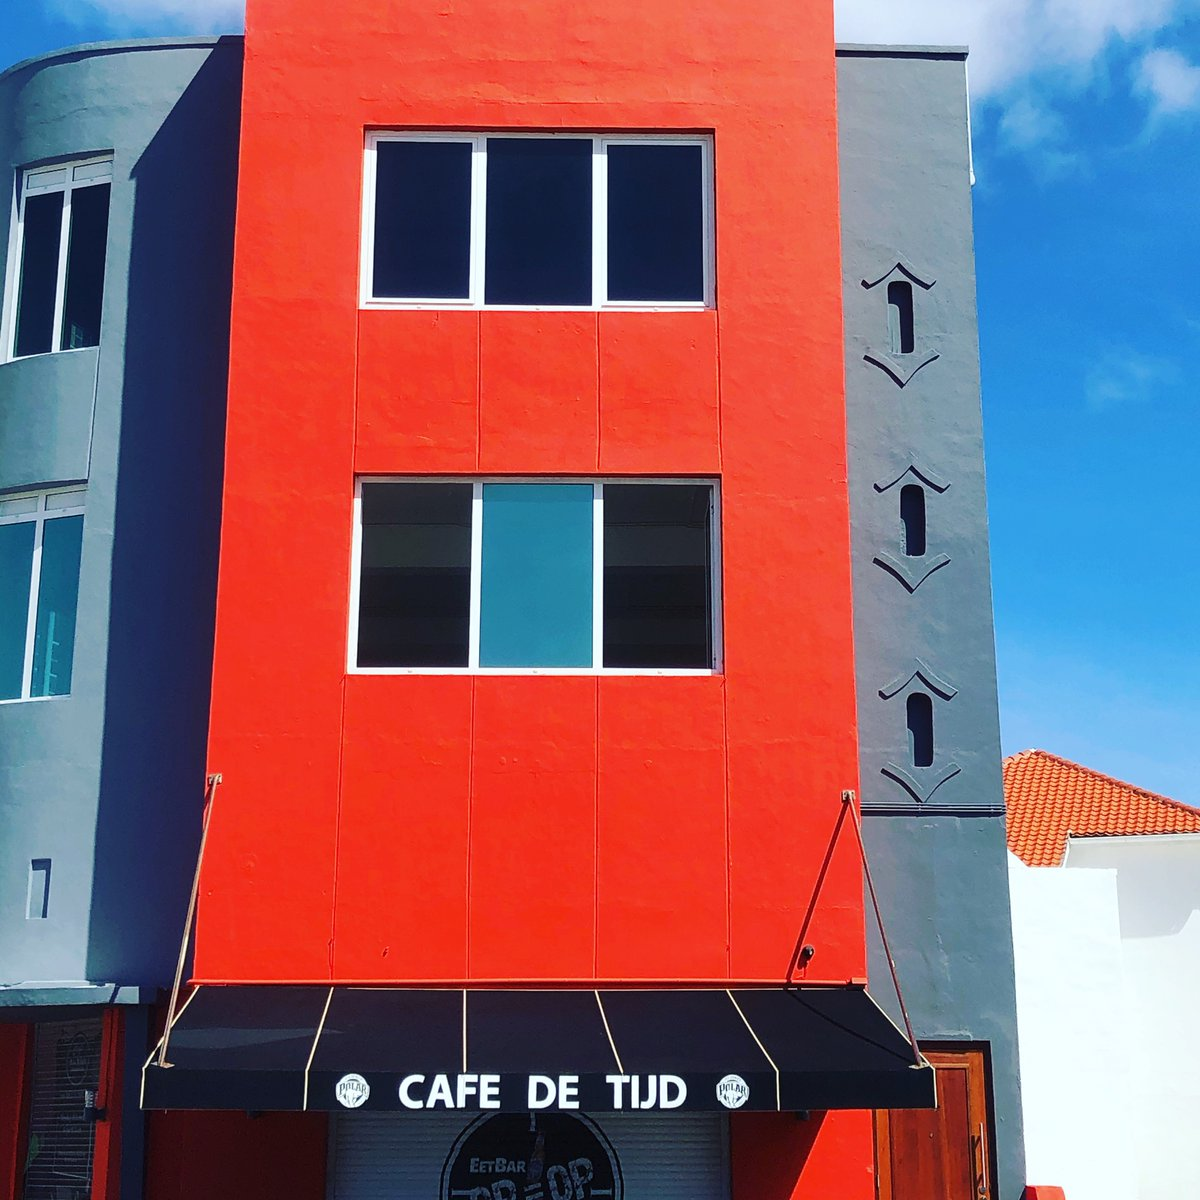 Cafe De Tijd - Best BBQ Ribs in Curacao.  . . Sharing a little Caribbean Sunshine ! Stay safe.  . . . #curacao #caribbean #staysafe #throwbackfriday #dushicuracaopic.twitter.com/622RCM7yCf